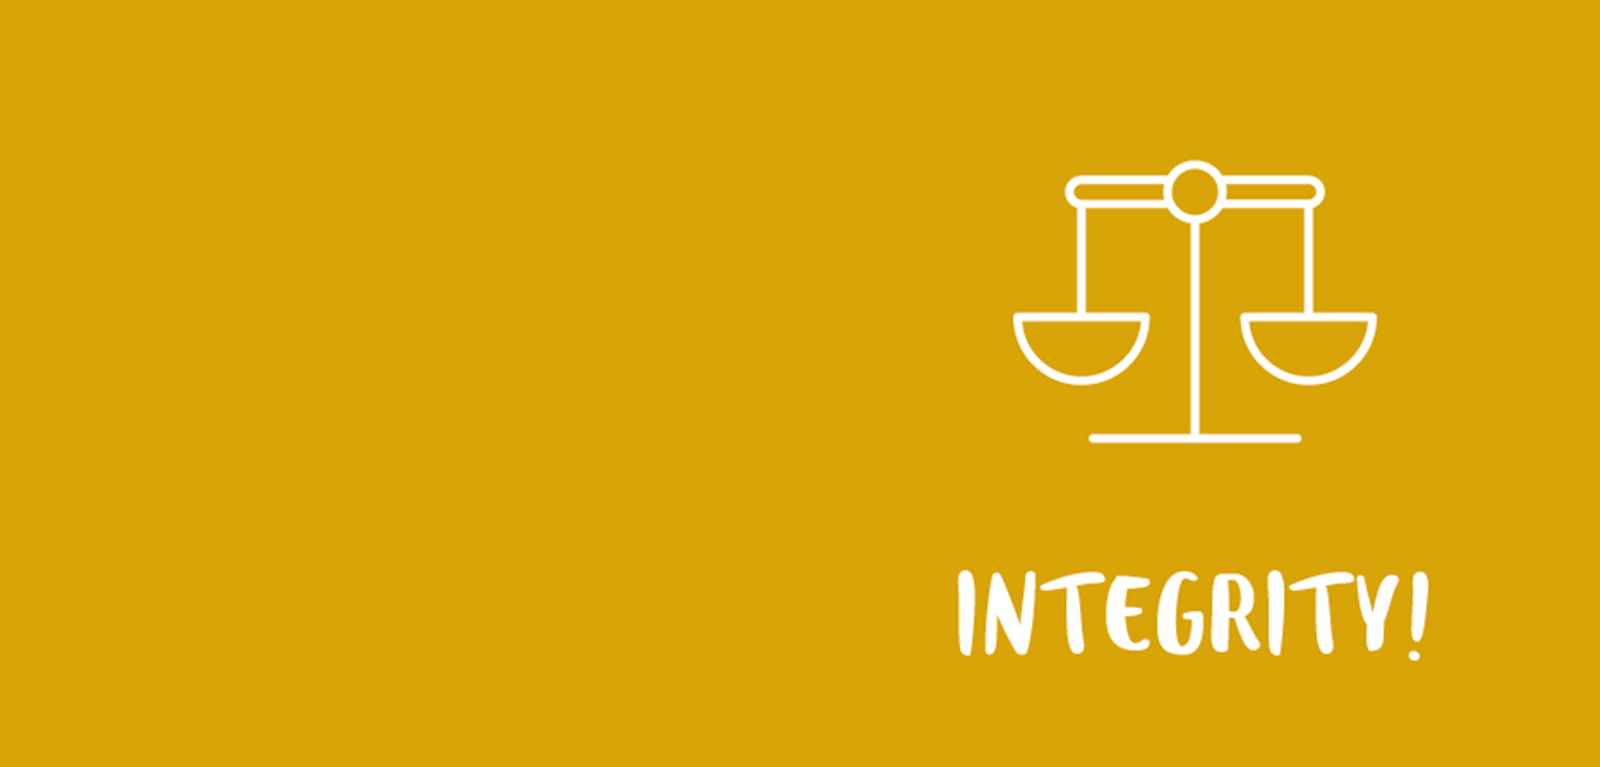 integrity banner - yellow